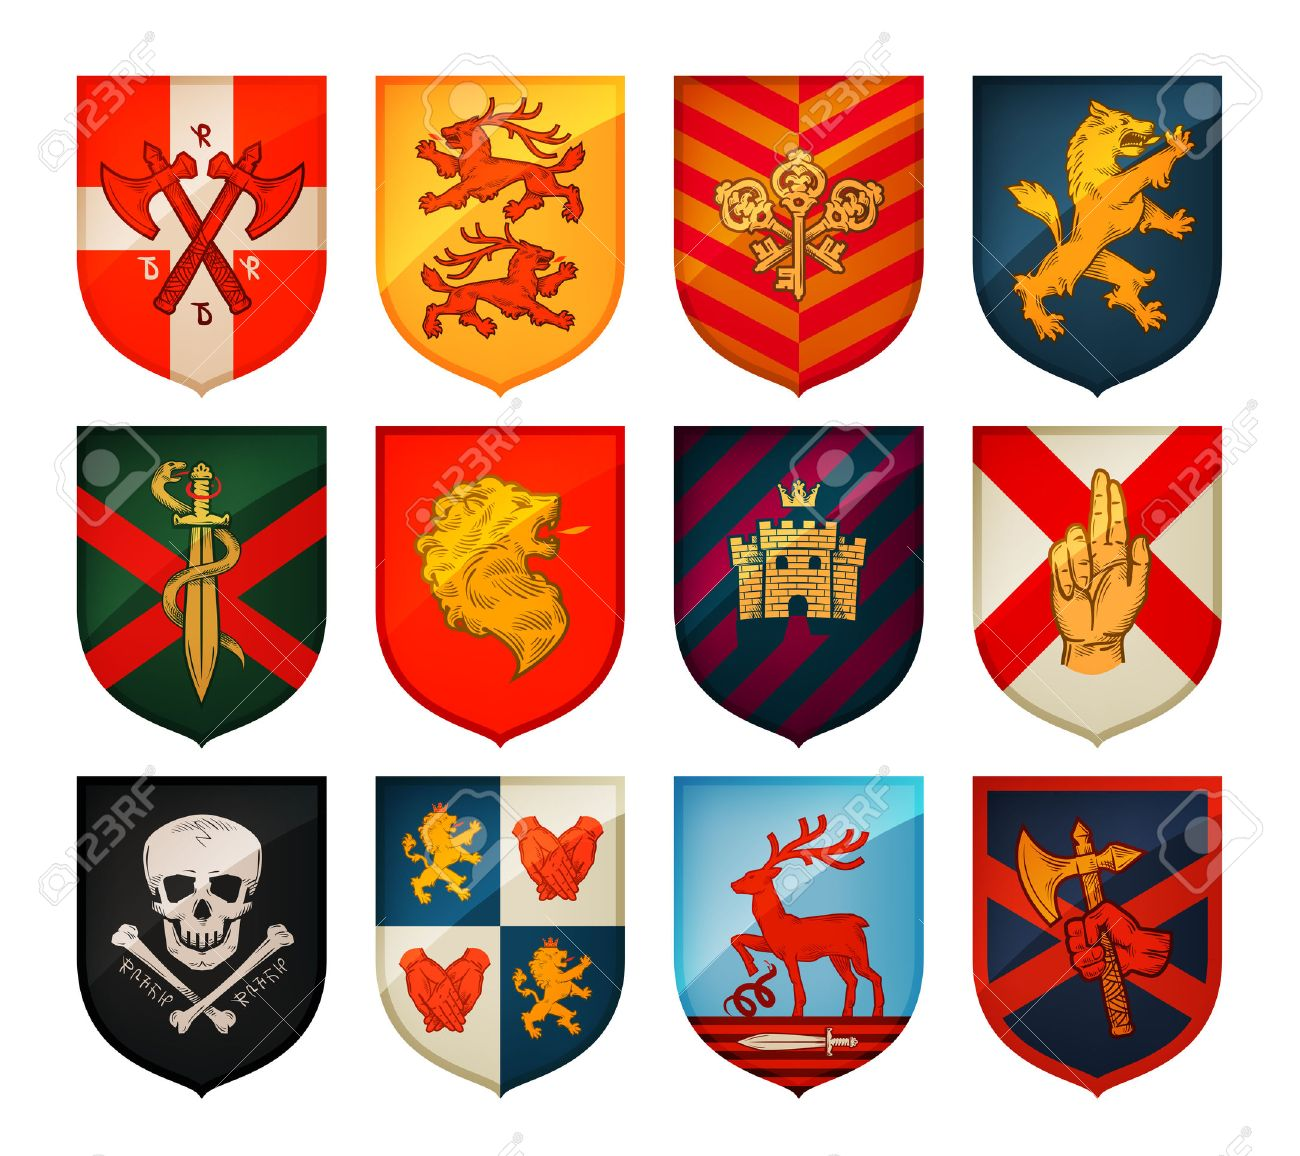 Collection of medieval shields and coat of arms. Kingdom, empire, castle vector symbol - 61268073